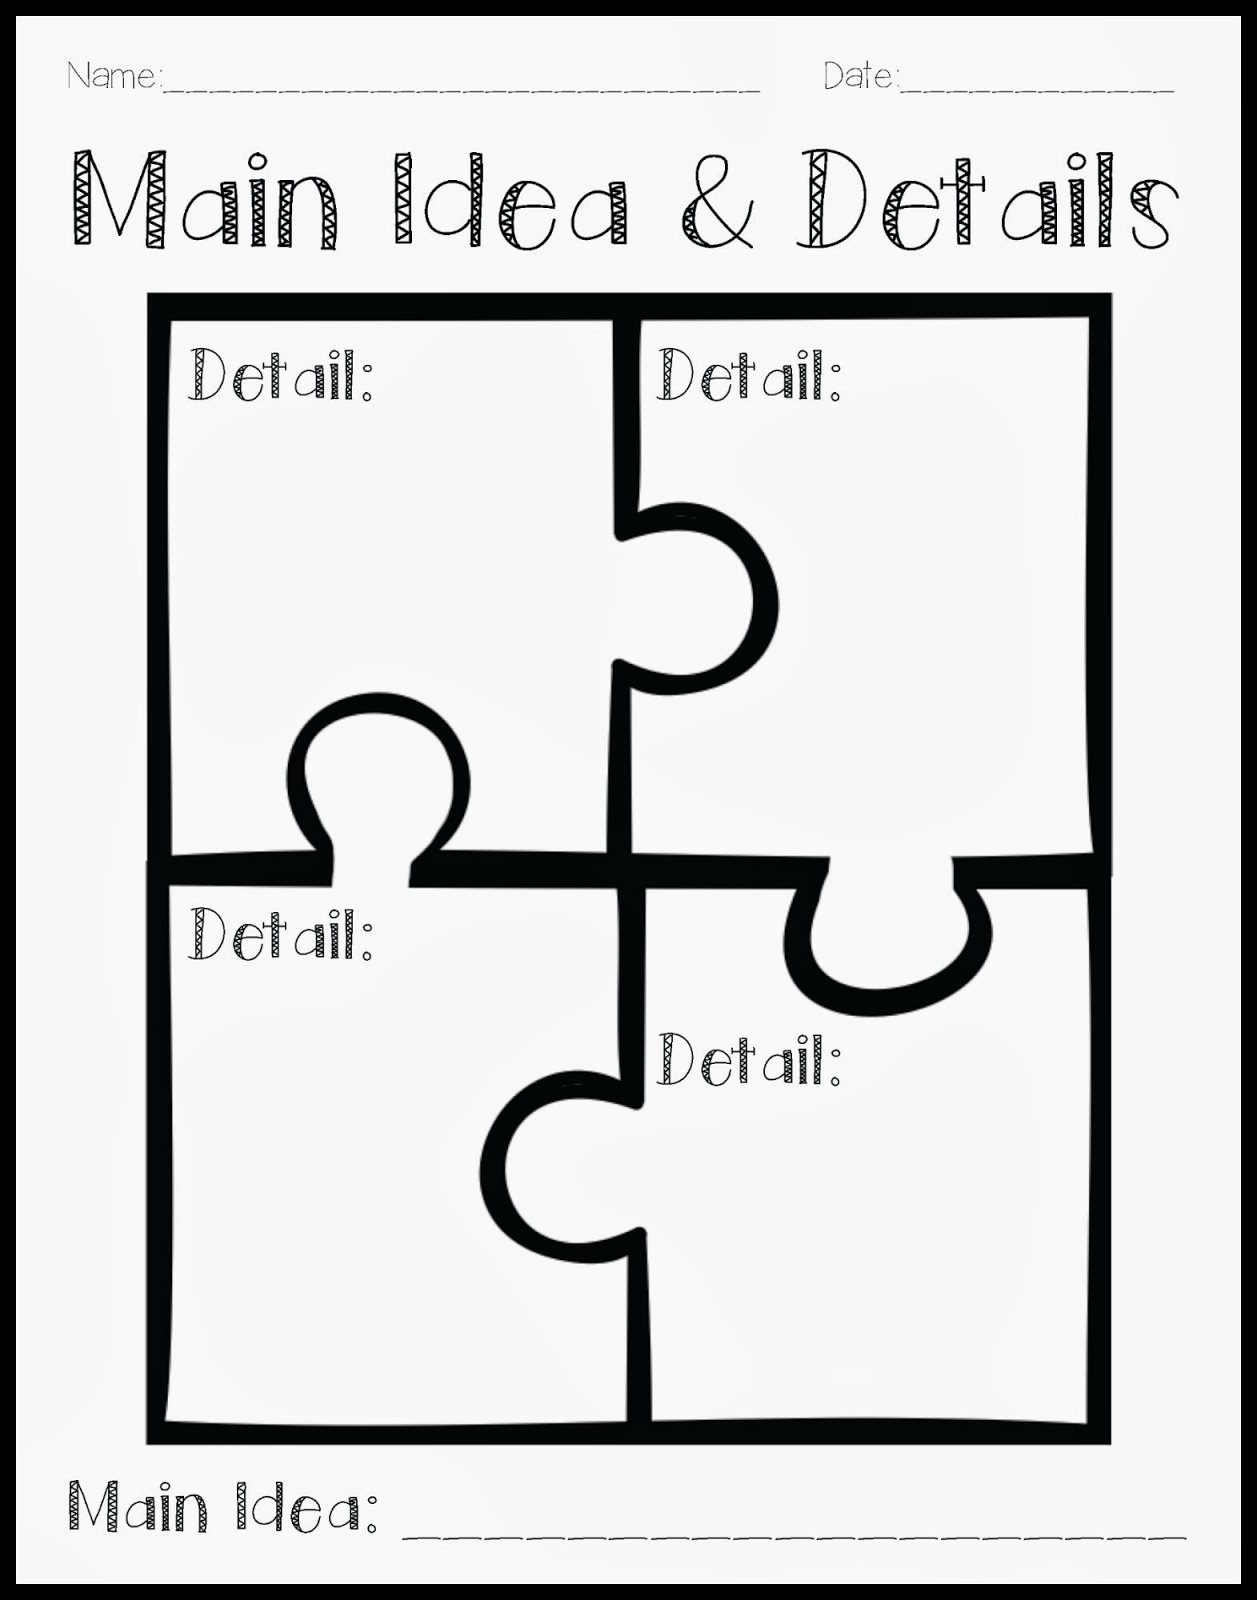 Crystal S Classroom Using A Puzzle To Teach Main Idea And